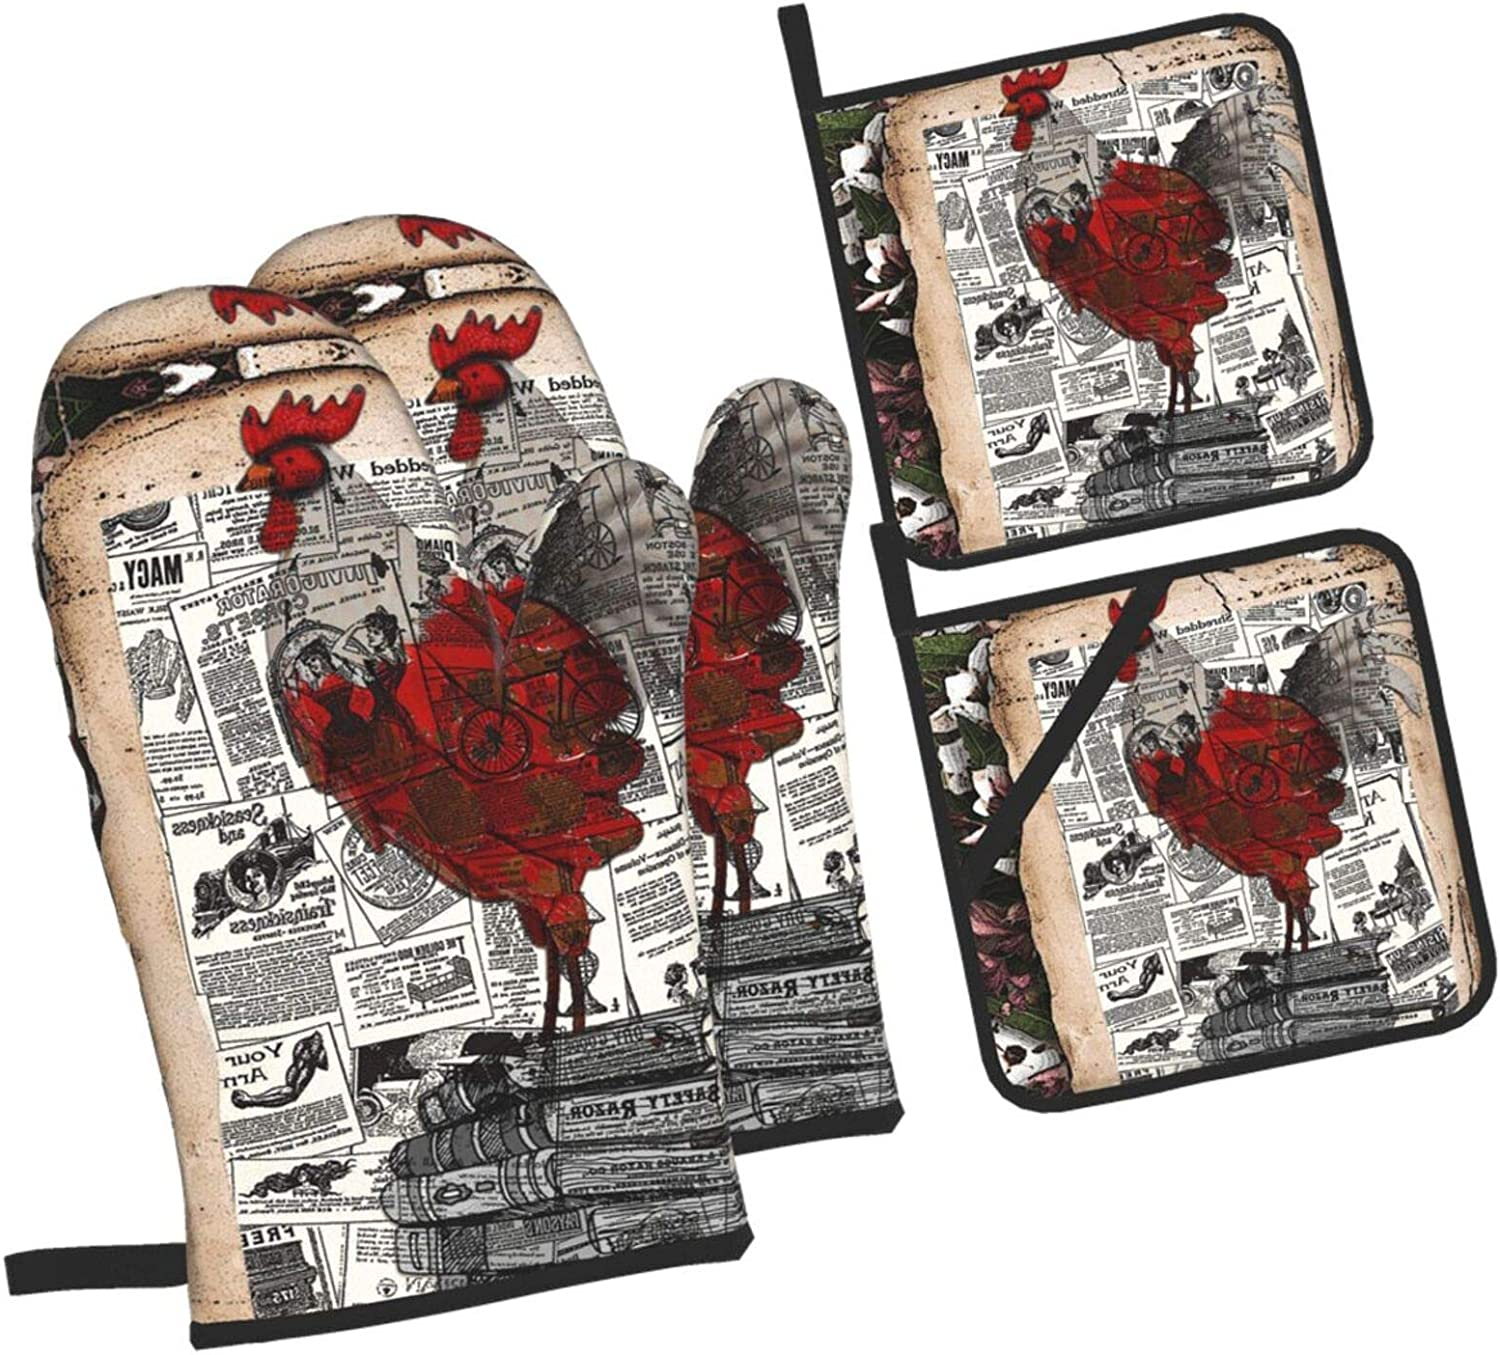 Red Vintage Rooster Oven Mitts and Pot Holders Set, Non Slip Oven Gloves and Potholders with Soft Lining Kitchen Microwave Gloves for Baking, Cooking, BBQ